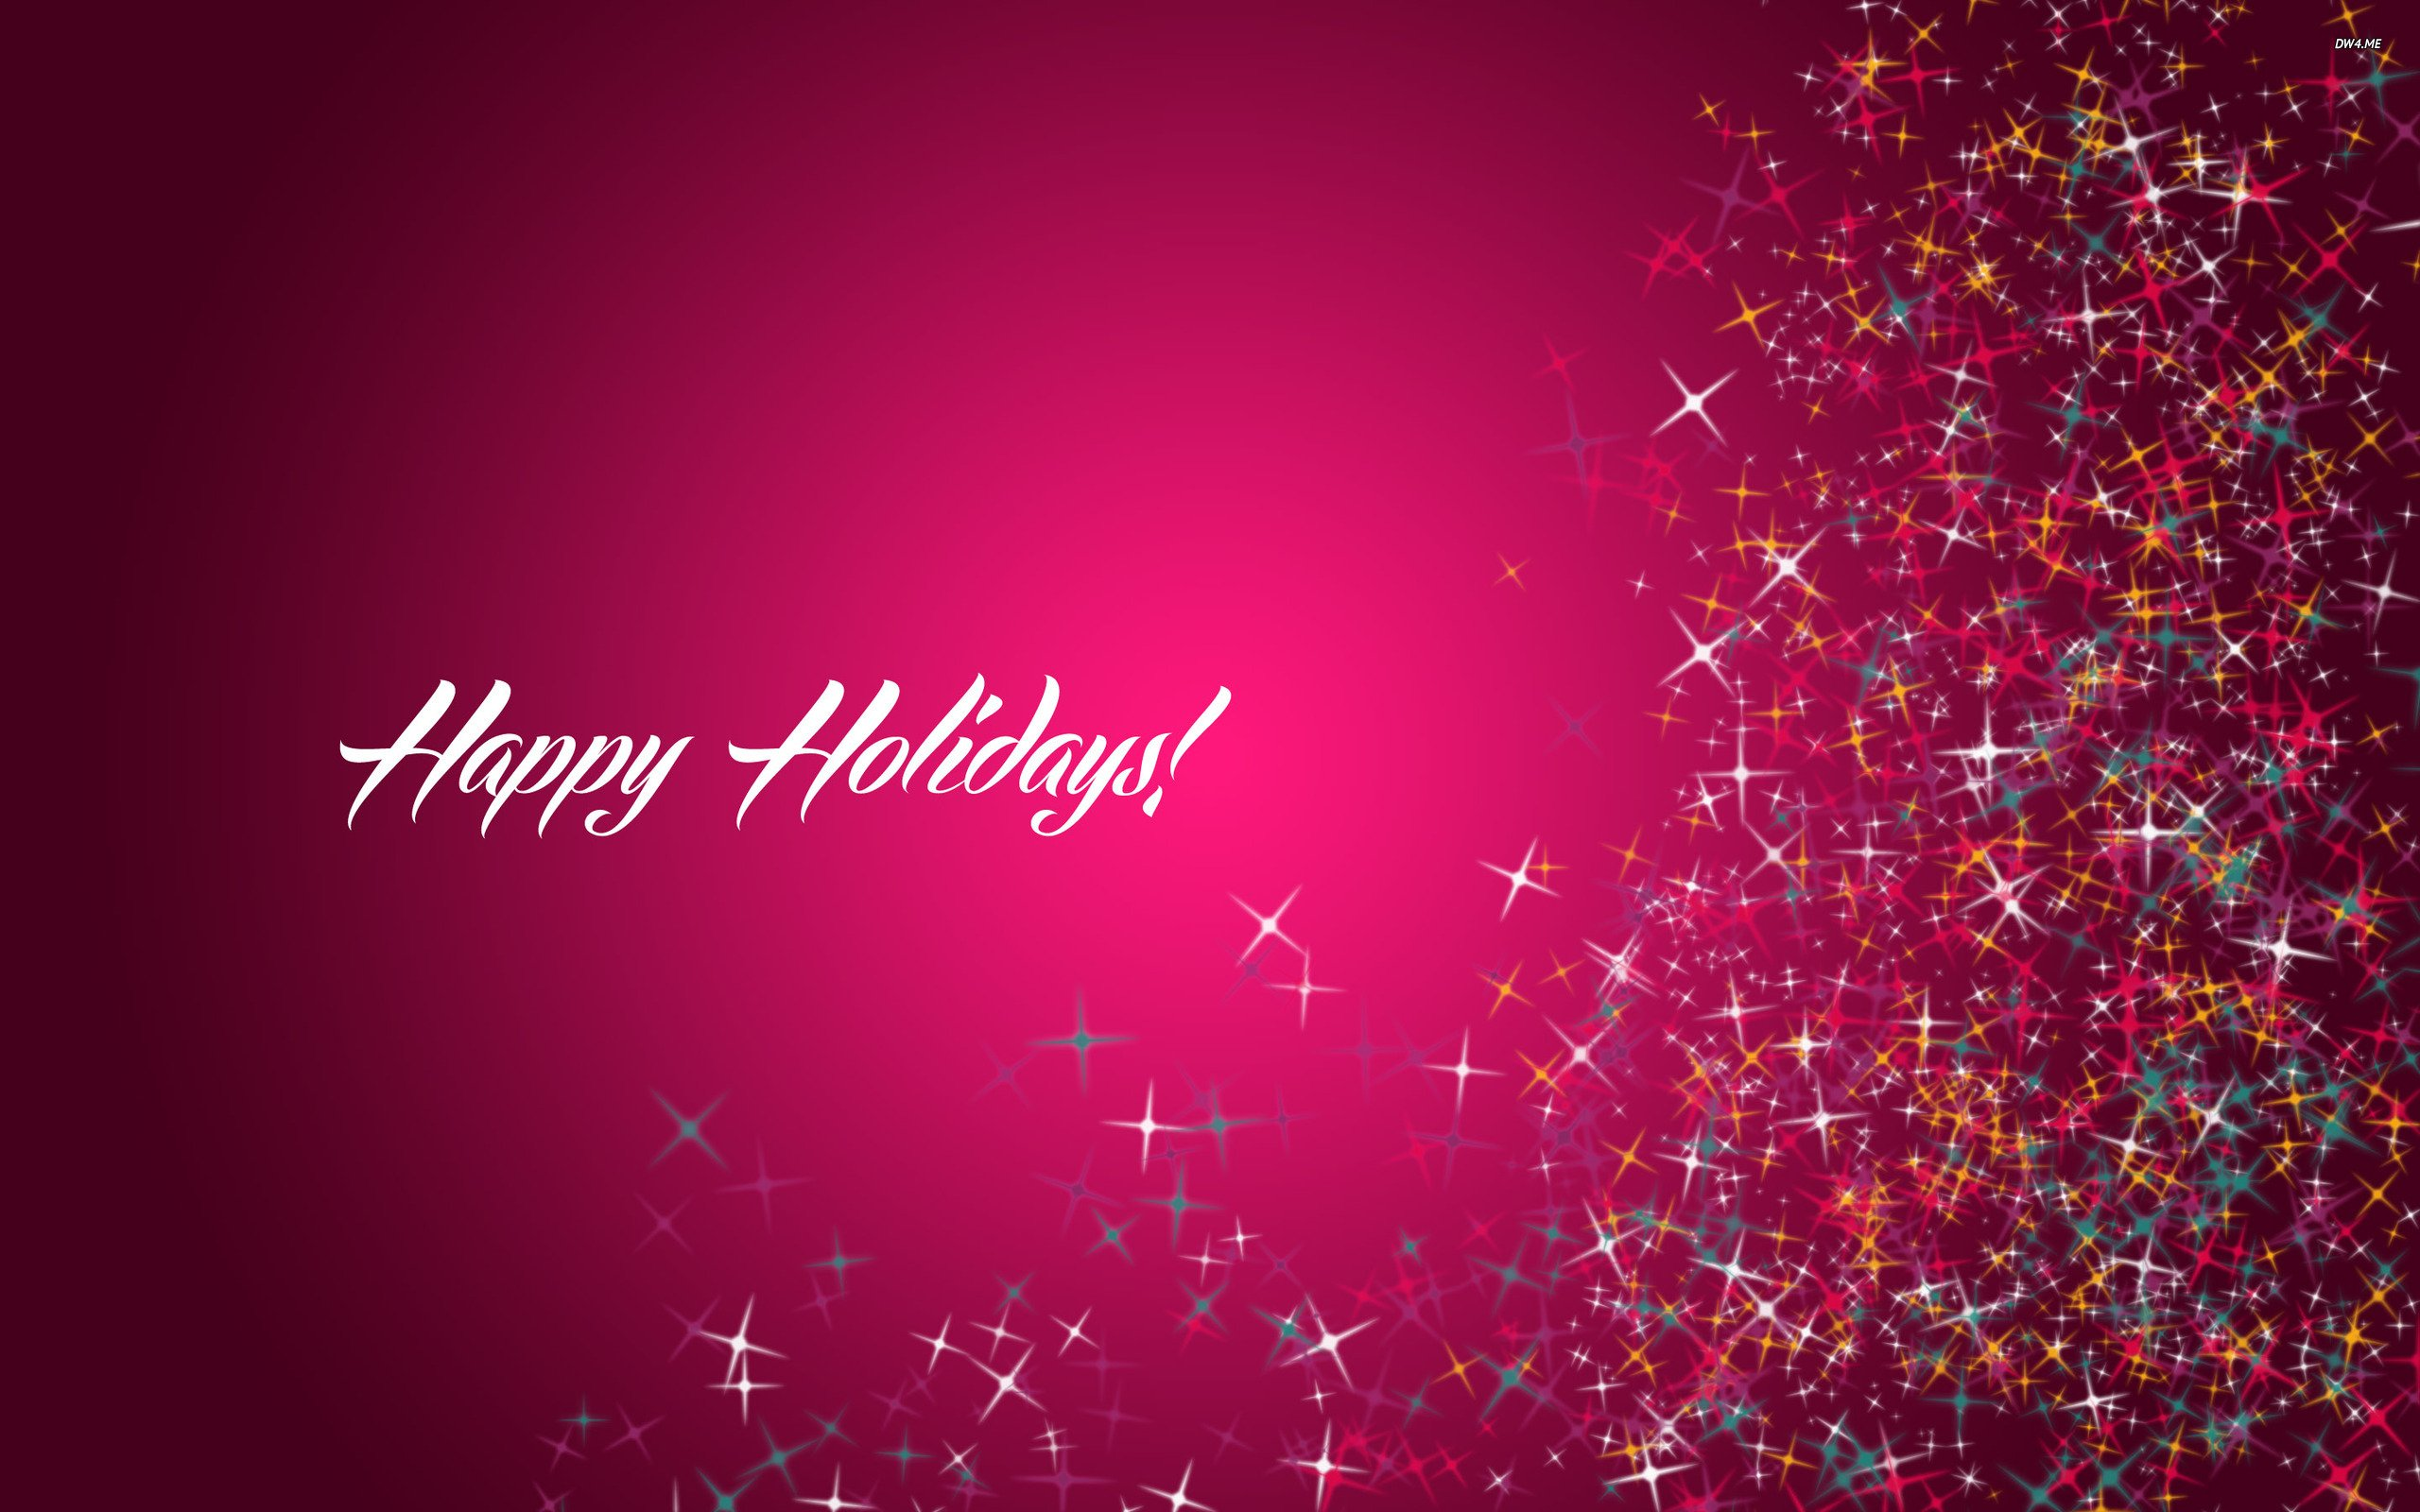 Happy Holidays wallpaper   Holiday wallpapers   2067 2560x1600